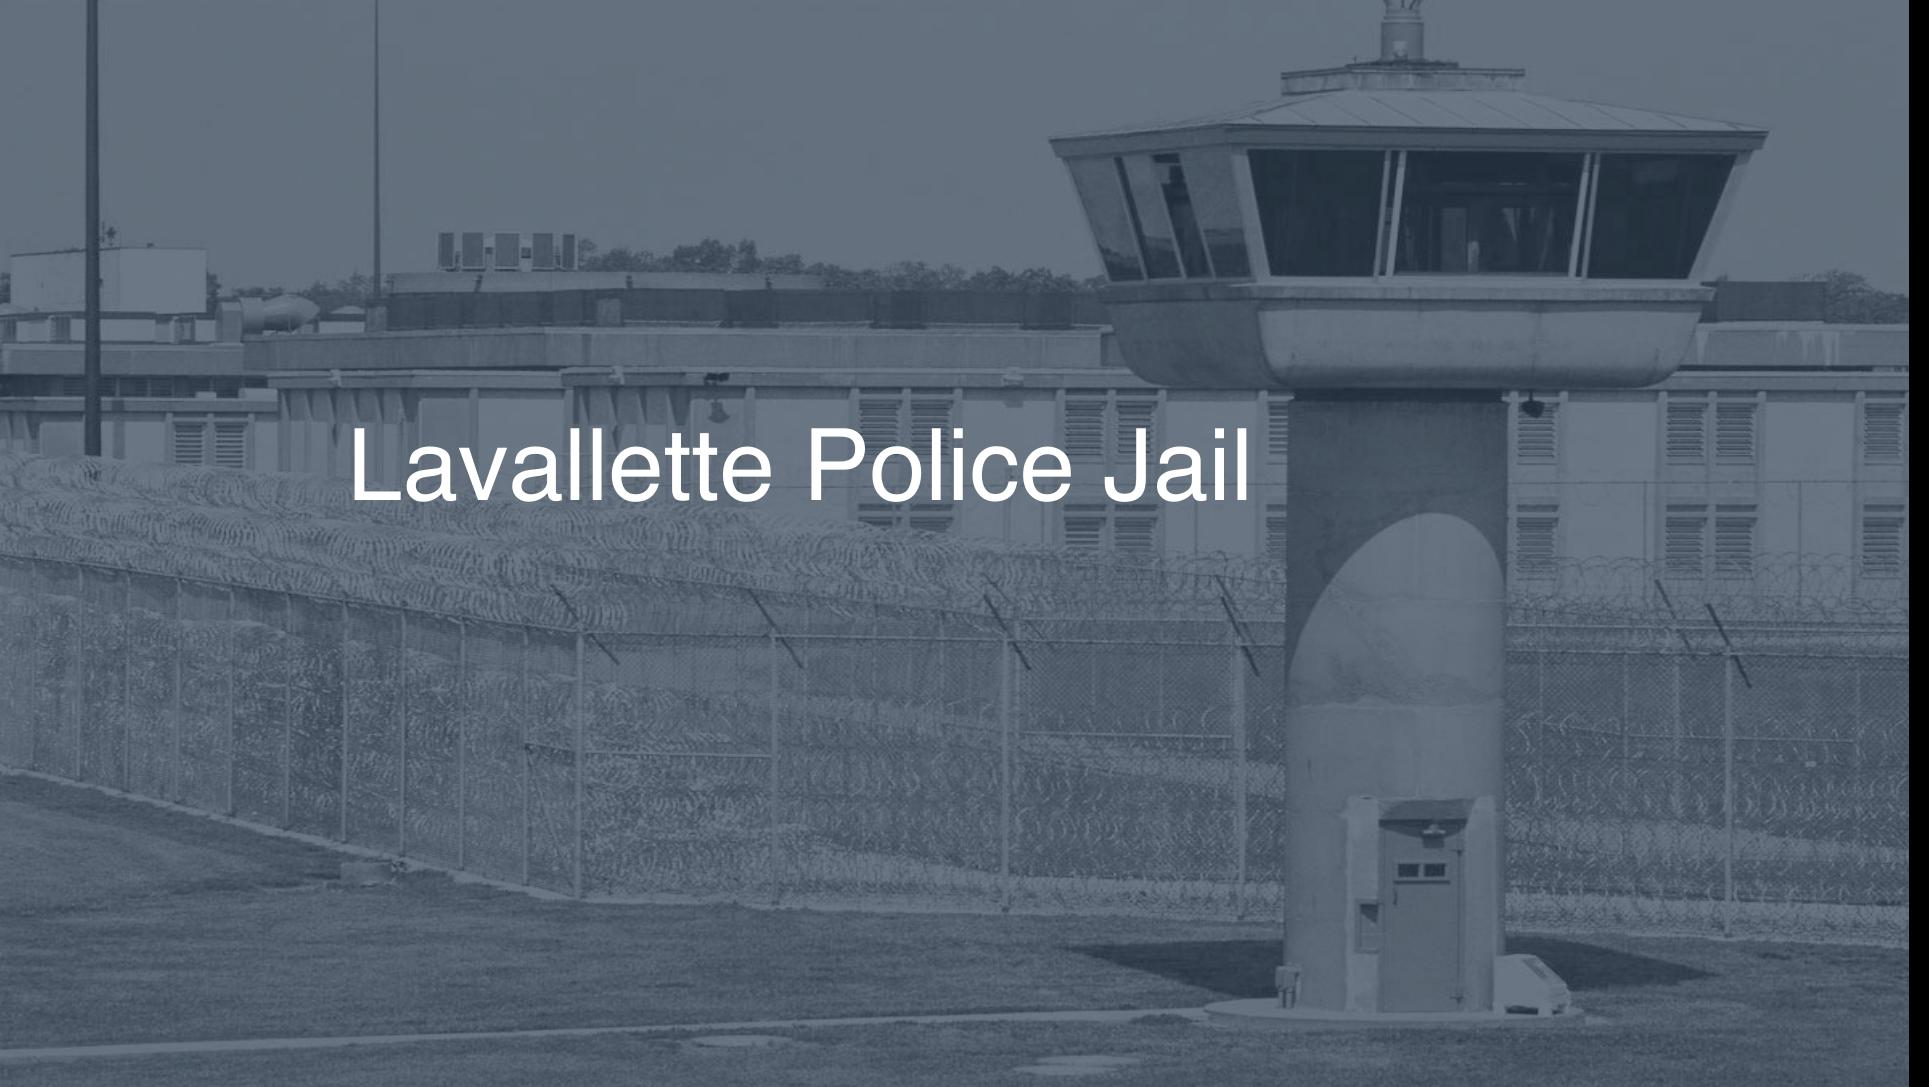 Lavallette Police Jail correctional facility picture